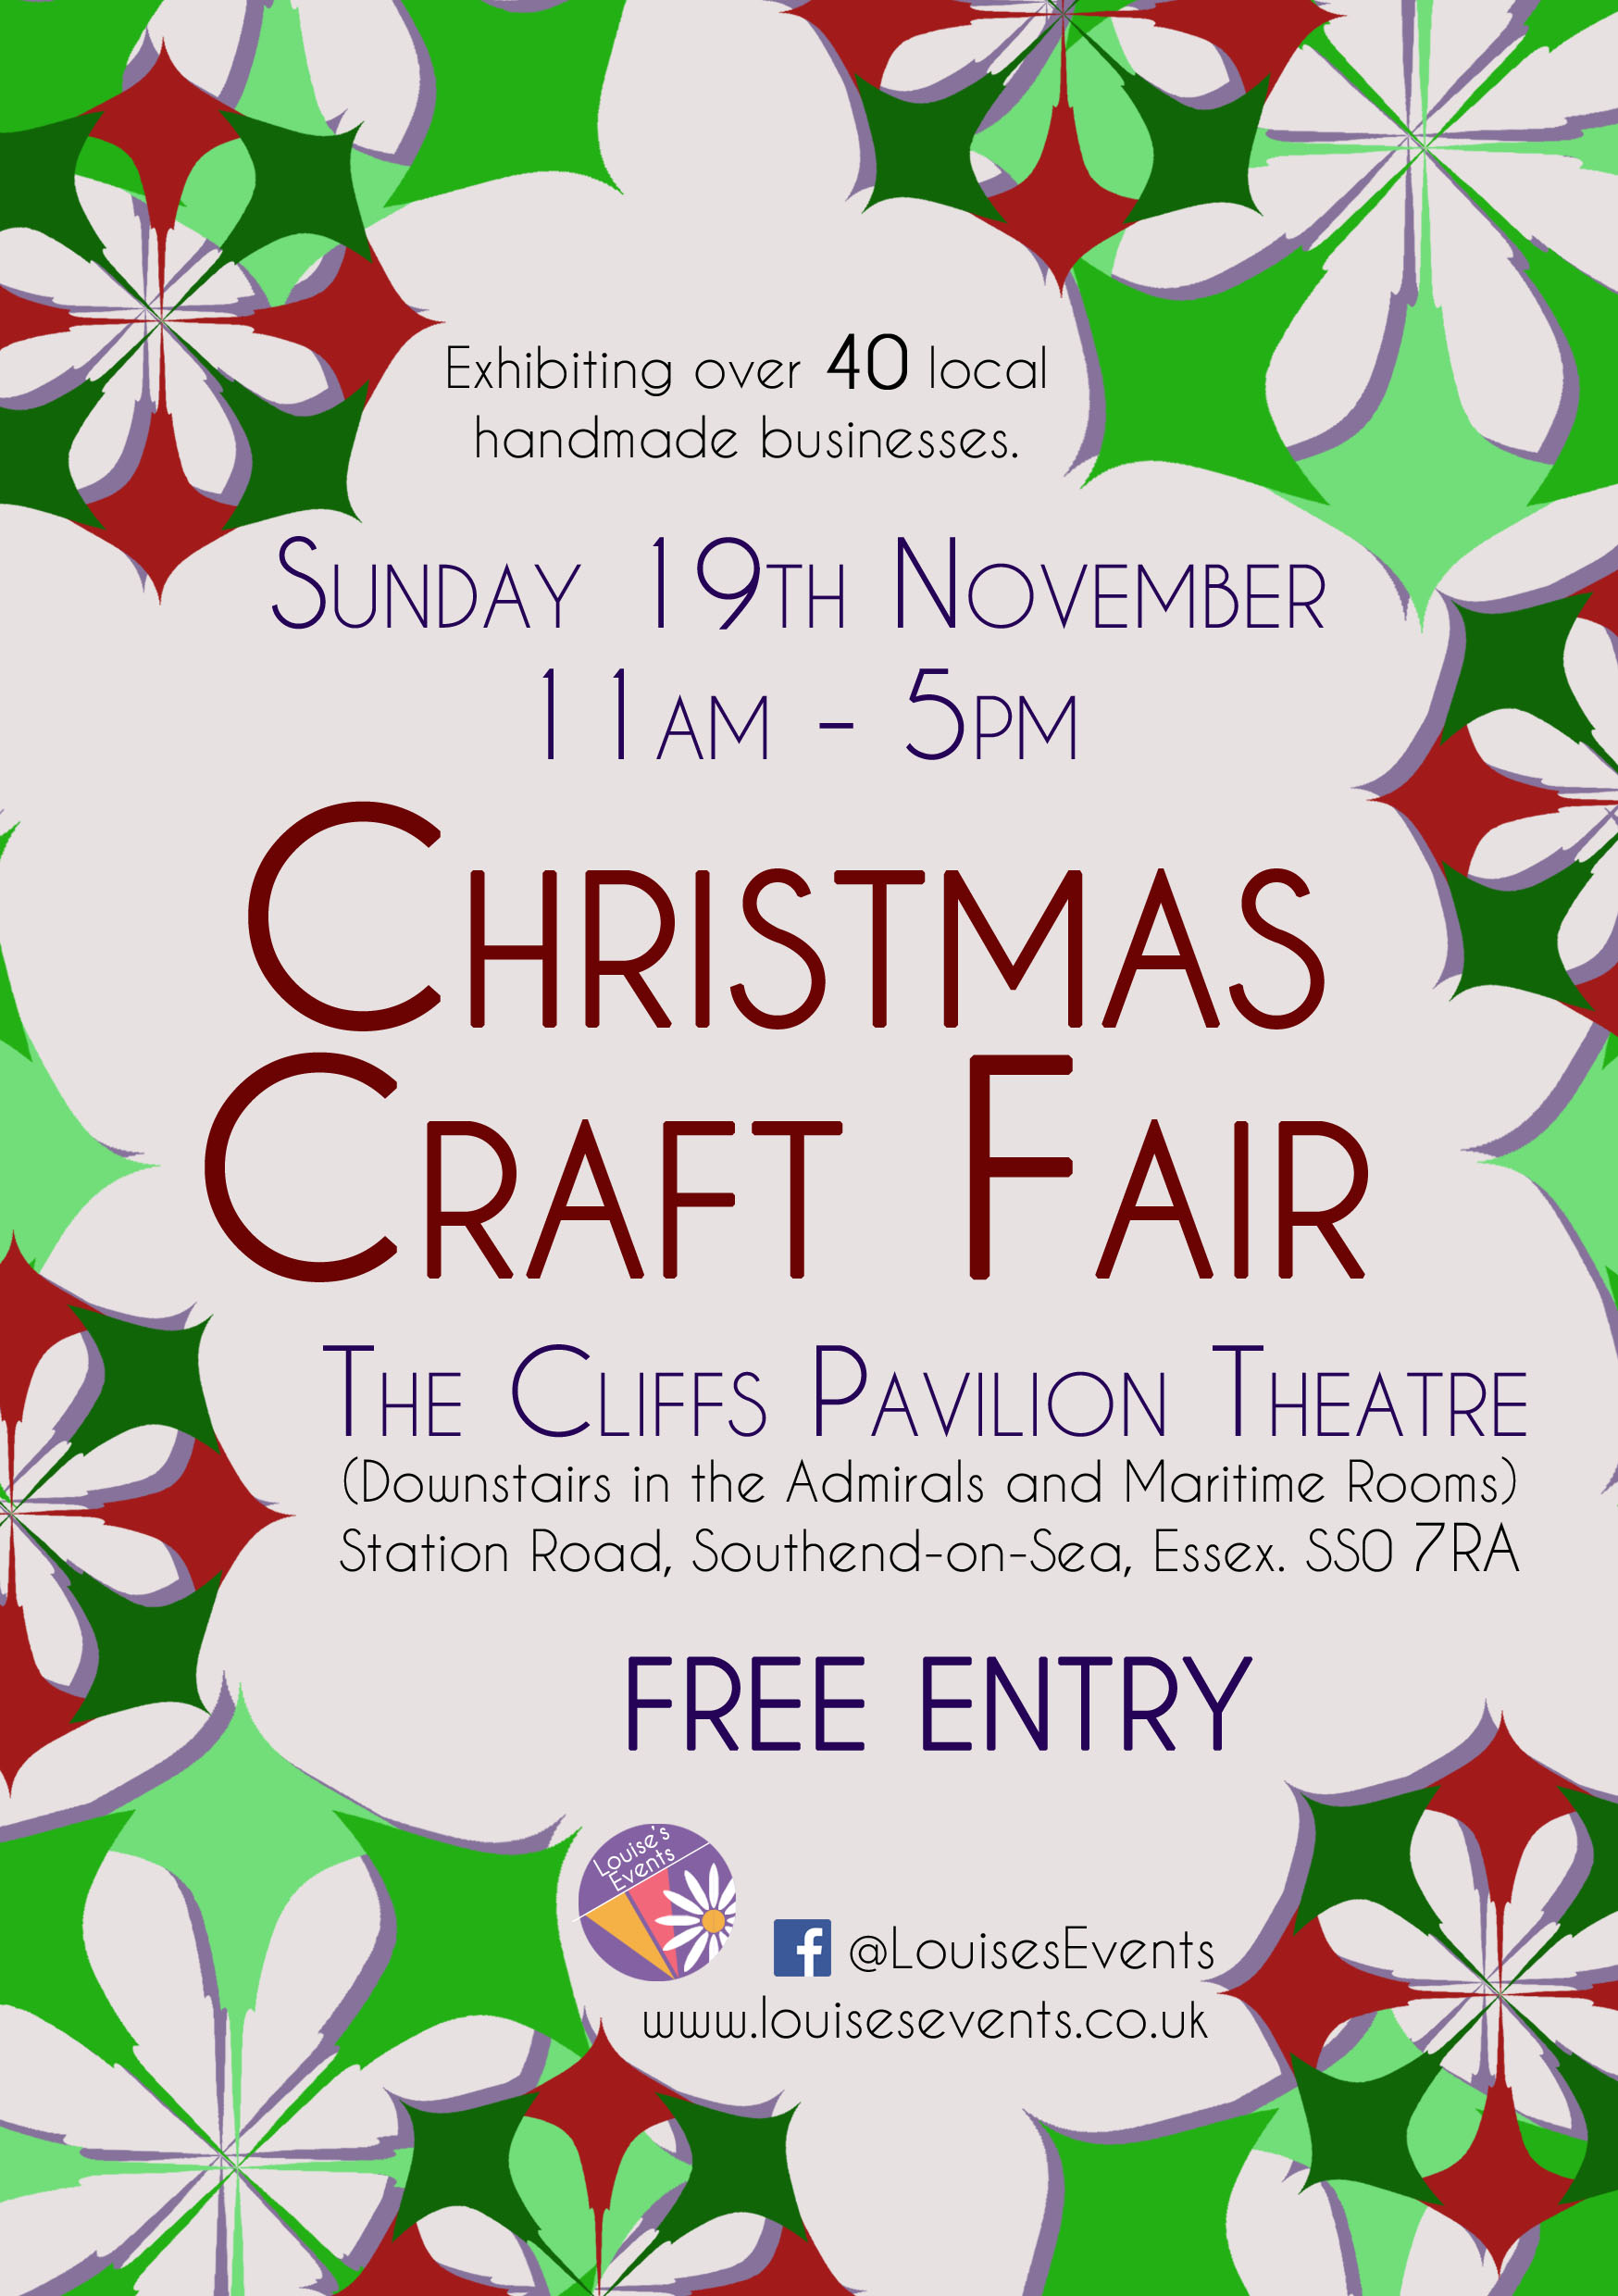 Christmas Craft Fair at The Cliffs Pavilion